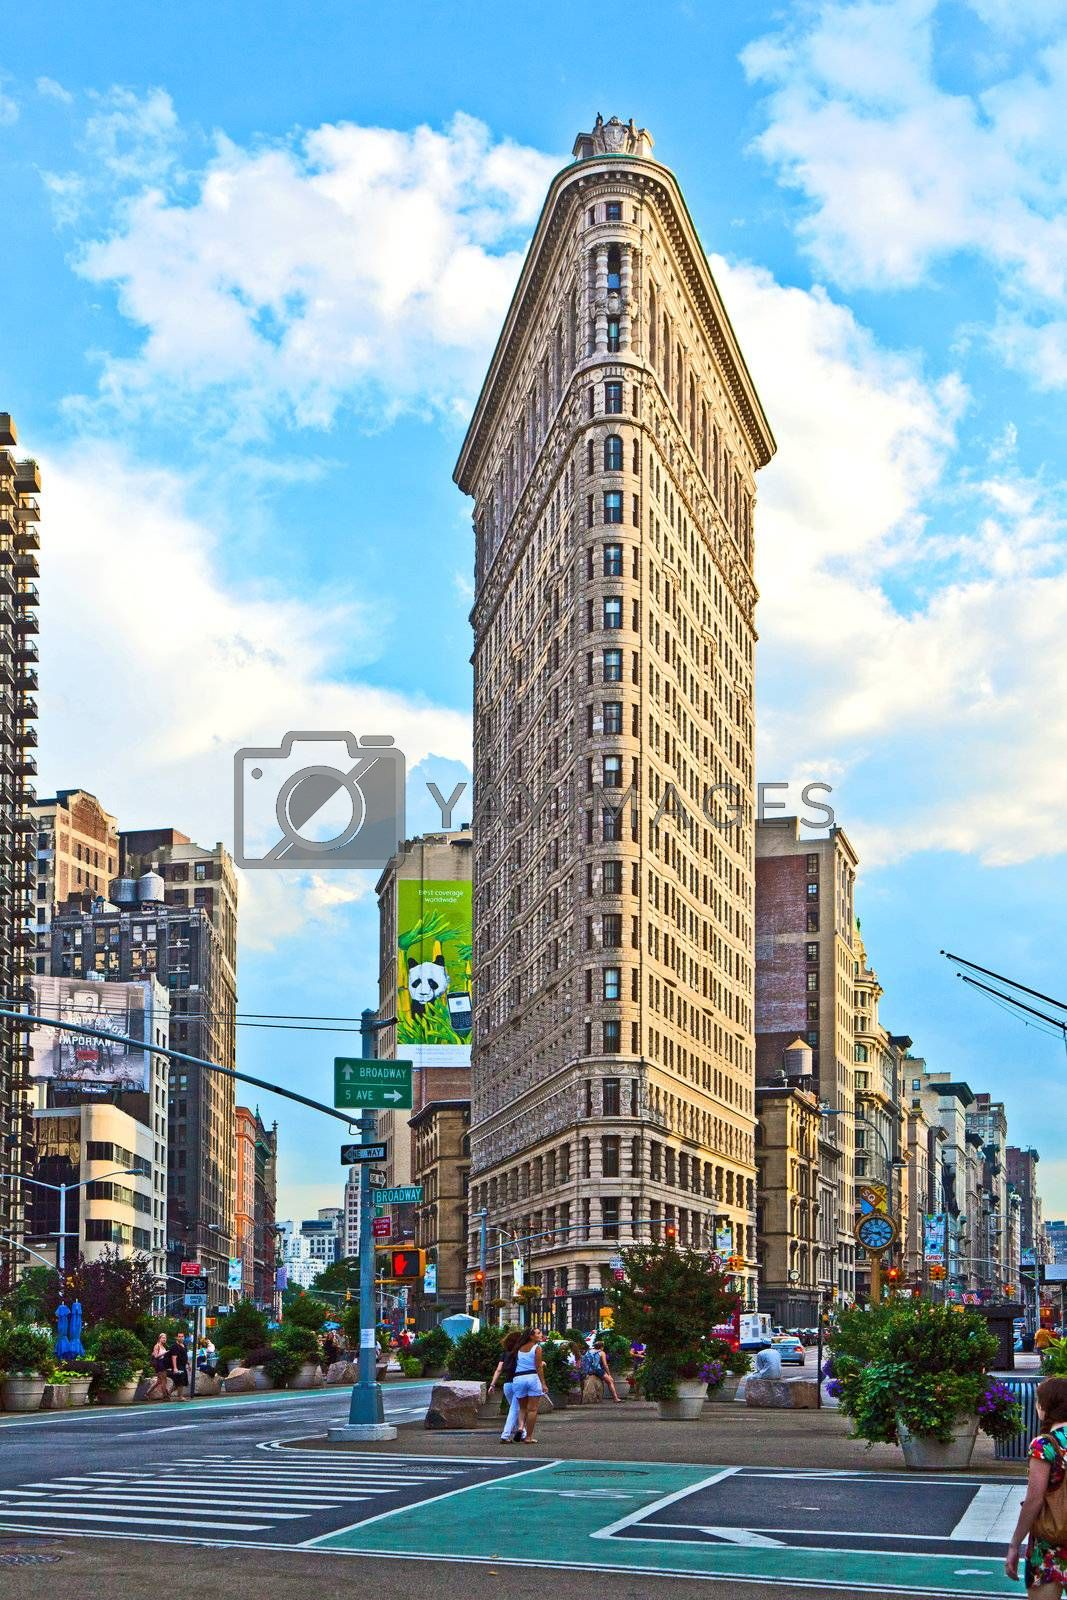 NEW YORK, USA – JULY 11: Facade of the Flatiron building late afternoon in sun on July 11,2010 in New York, USA.